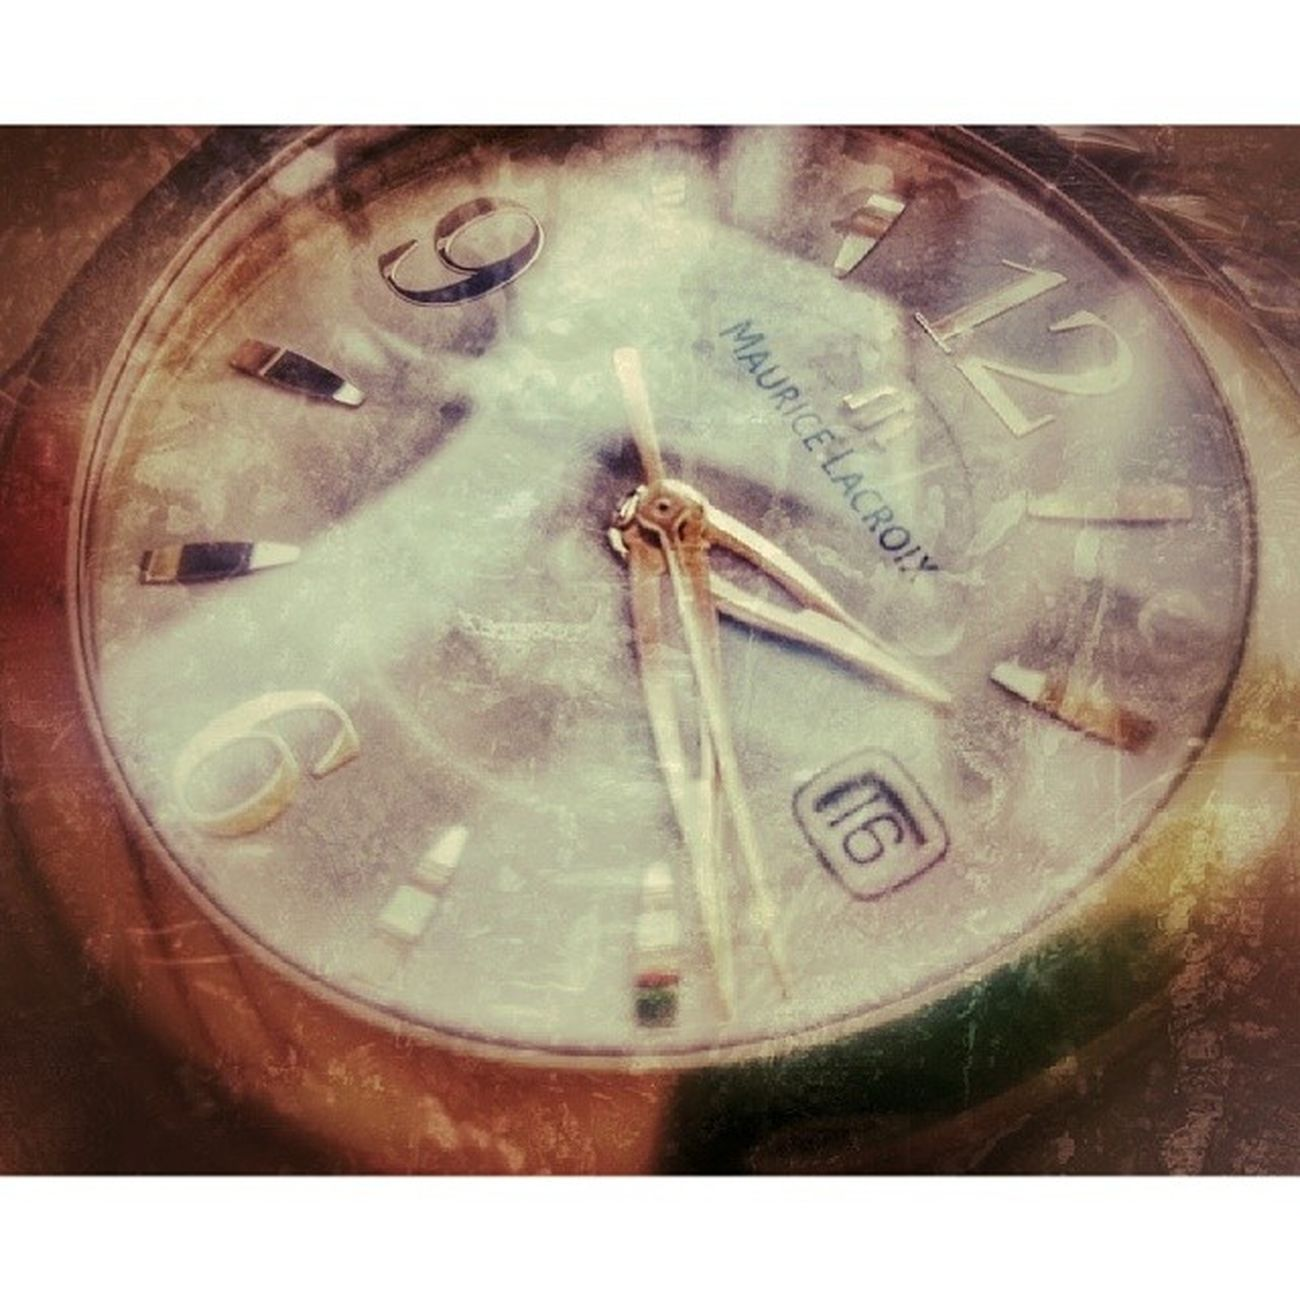 Watch Hour Clock Timer eternity bir_dakika aniyakala objektifimden ig_mood instamood instadaily instaphoto statigram igers ig_turkey turkinstagram turkishfollowers igdaily turkeystagram statigram snapseed instacool instagood tagsforlikes tagstagram tweegram webstagram